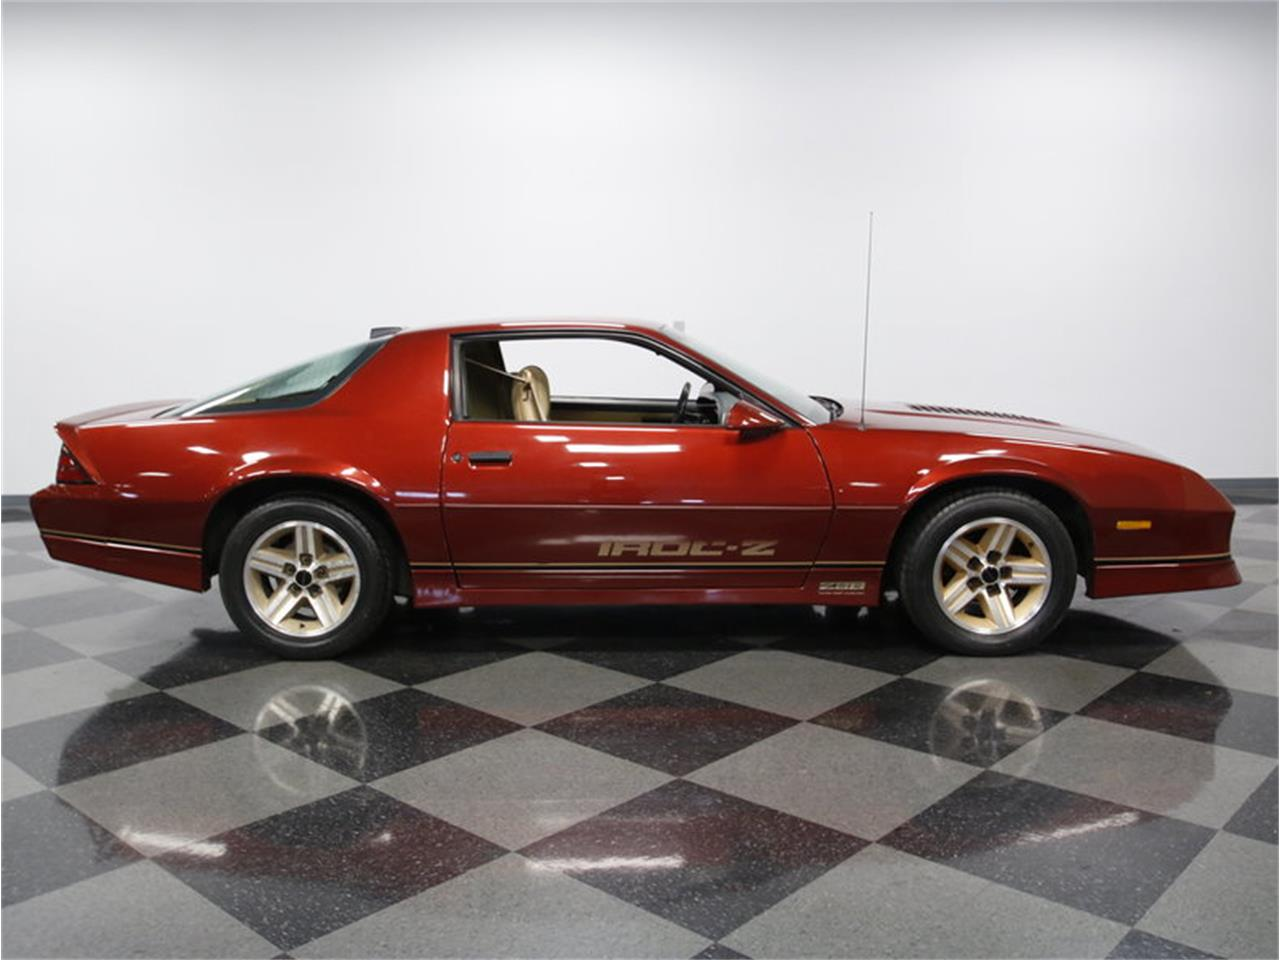 Large Picture of '86 Chevrolet Camaro IROC Z28 located in North Carolina - $12,995.00 Offered by Streetside Classics - Charlotte - L6HZ